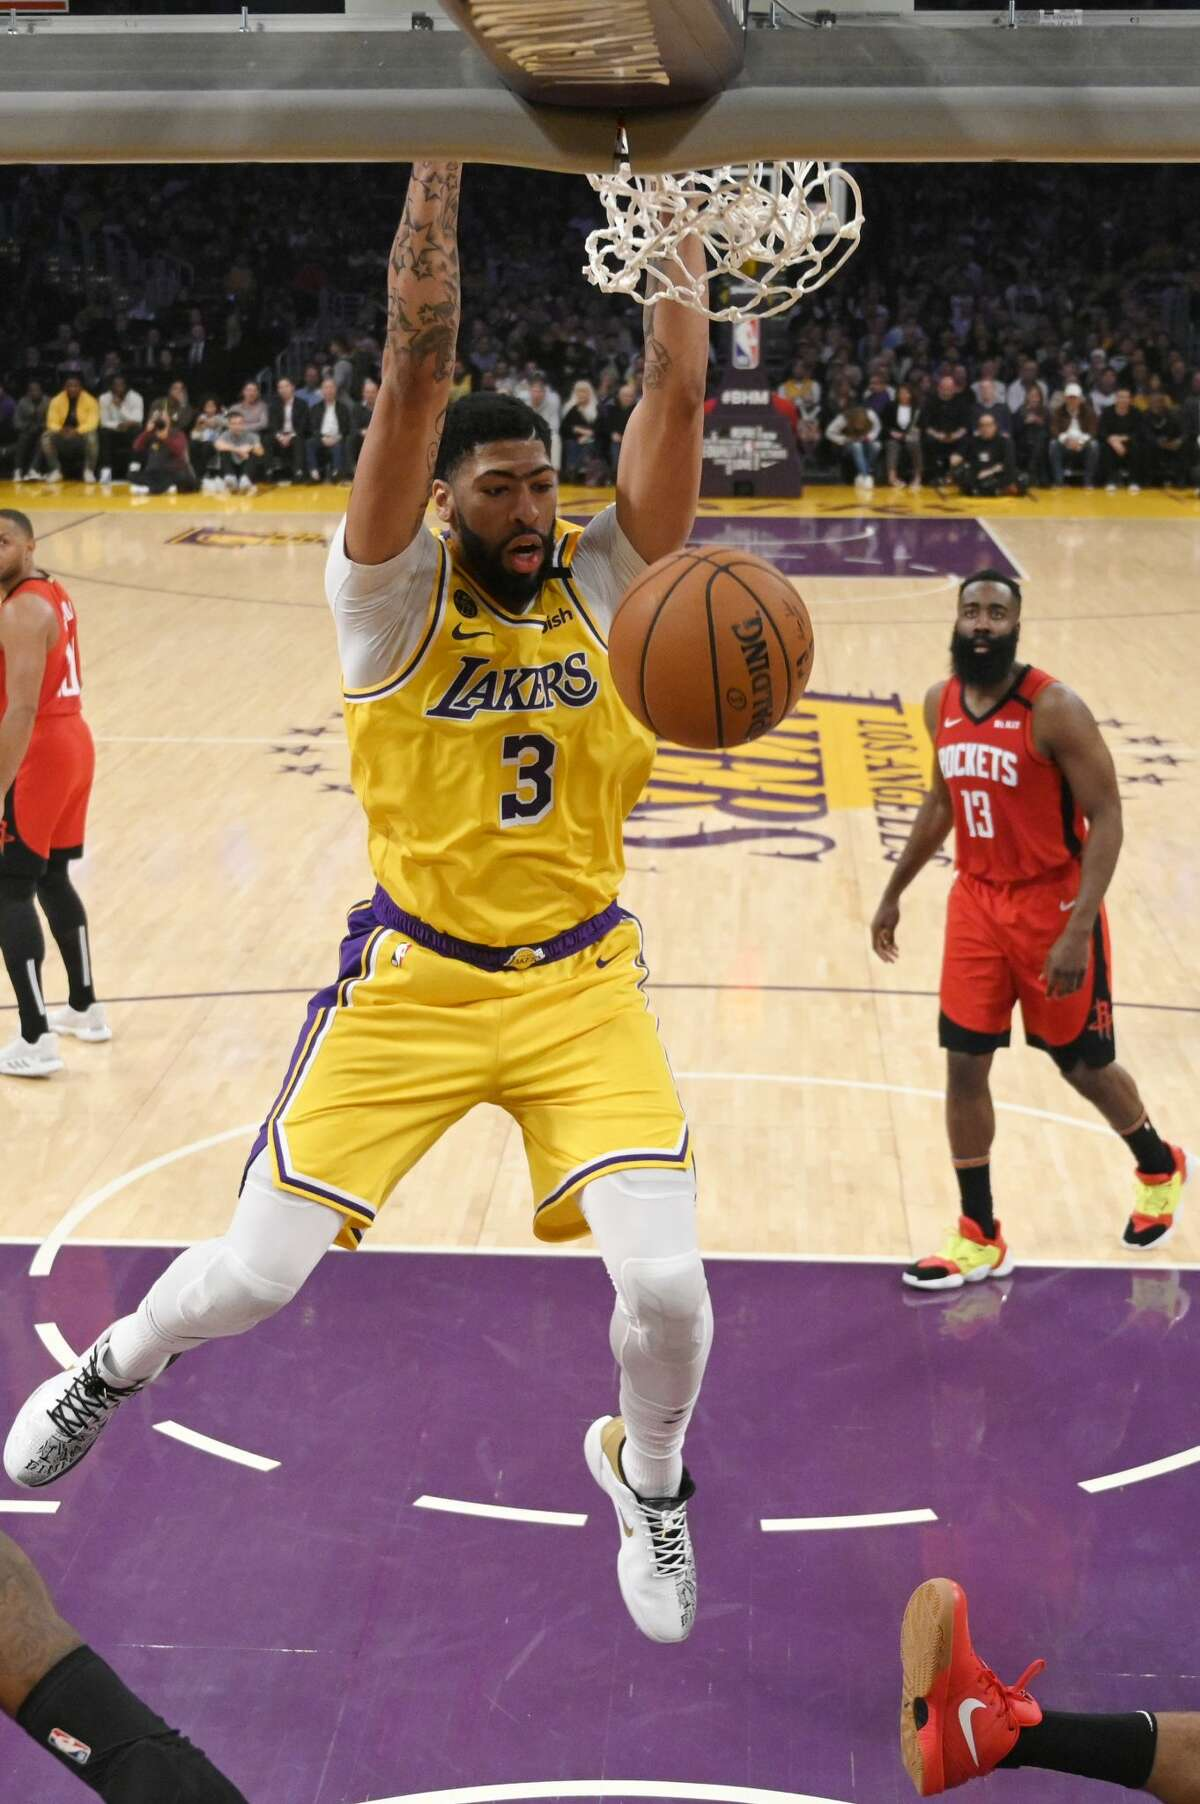 Los Angeles Lakers forward Anthony Davis dunks as Houston Rockets guard James Harden watches during the second half of an NBA basketball game Thursday, Feb. 6, 2020, in Los Angeles. The Rockets won 121-111. (AP Photo/Mark J. Terrill)